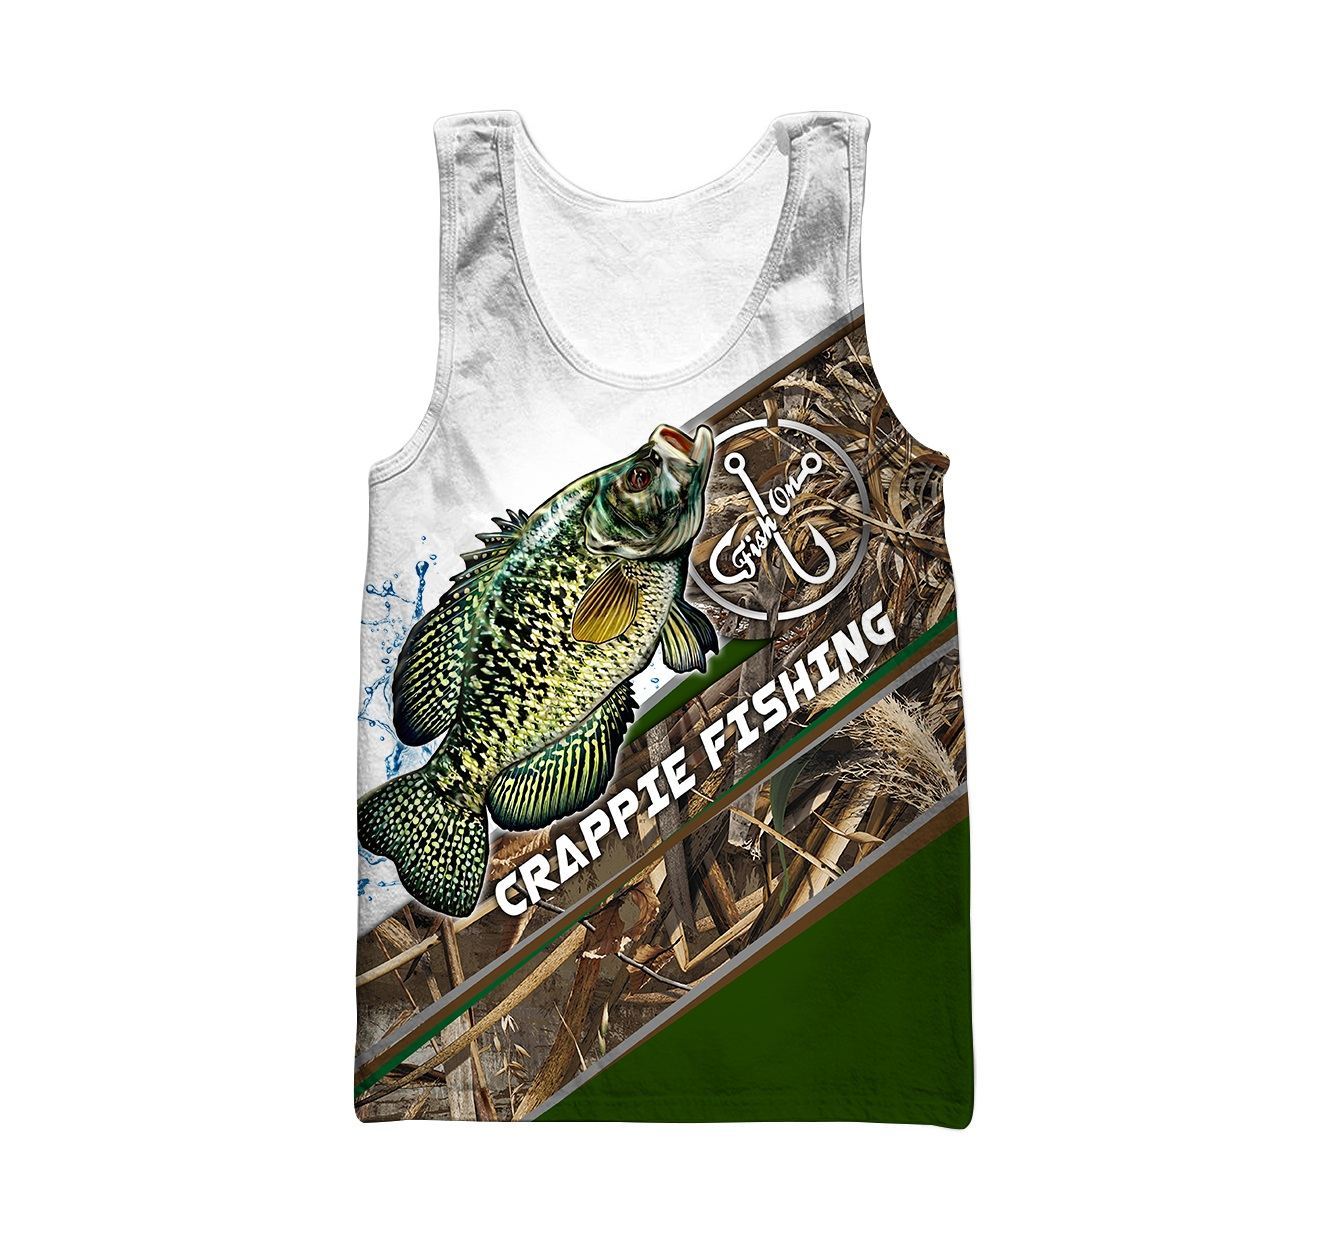 Crappie fishing camo personalized custom name 3d tank top